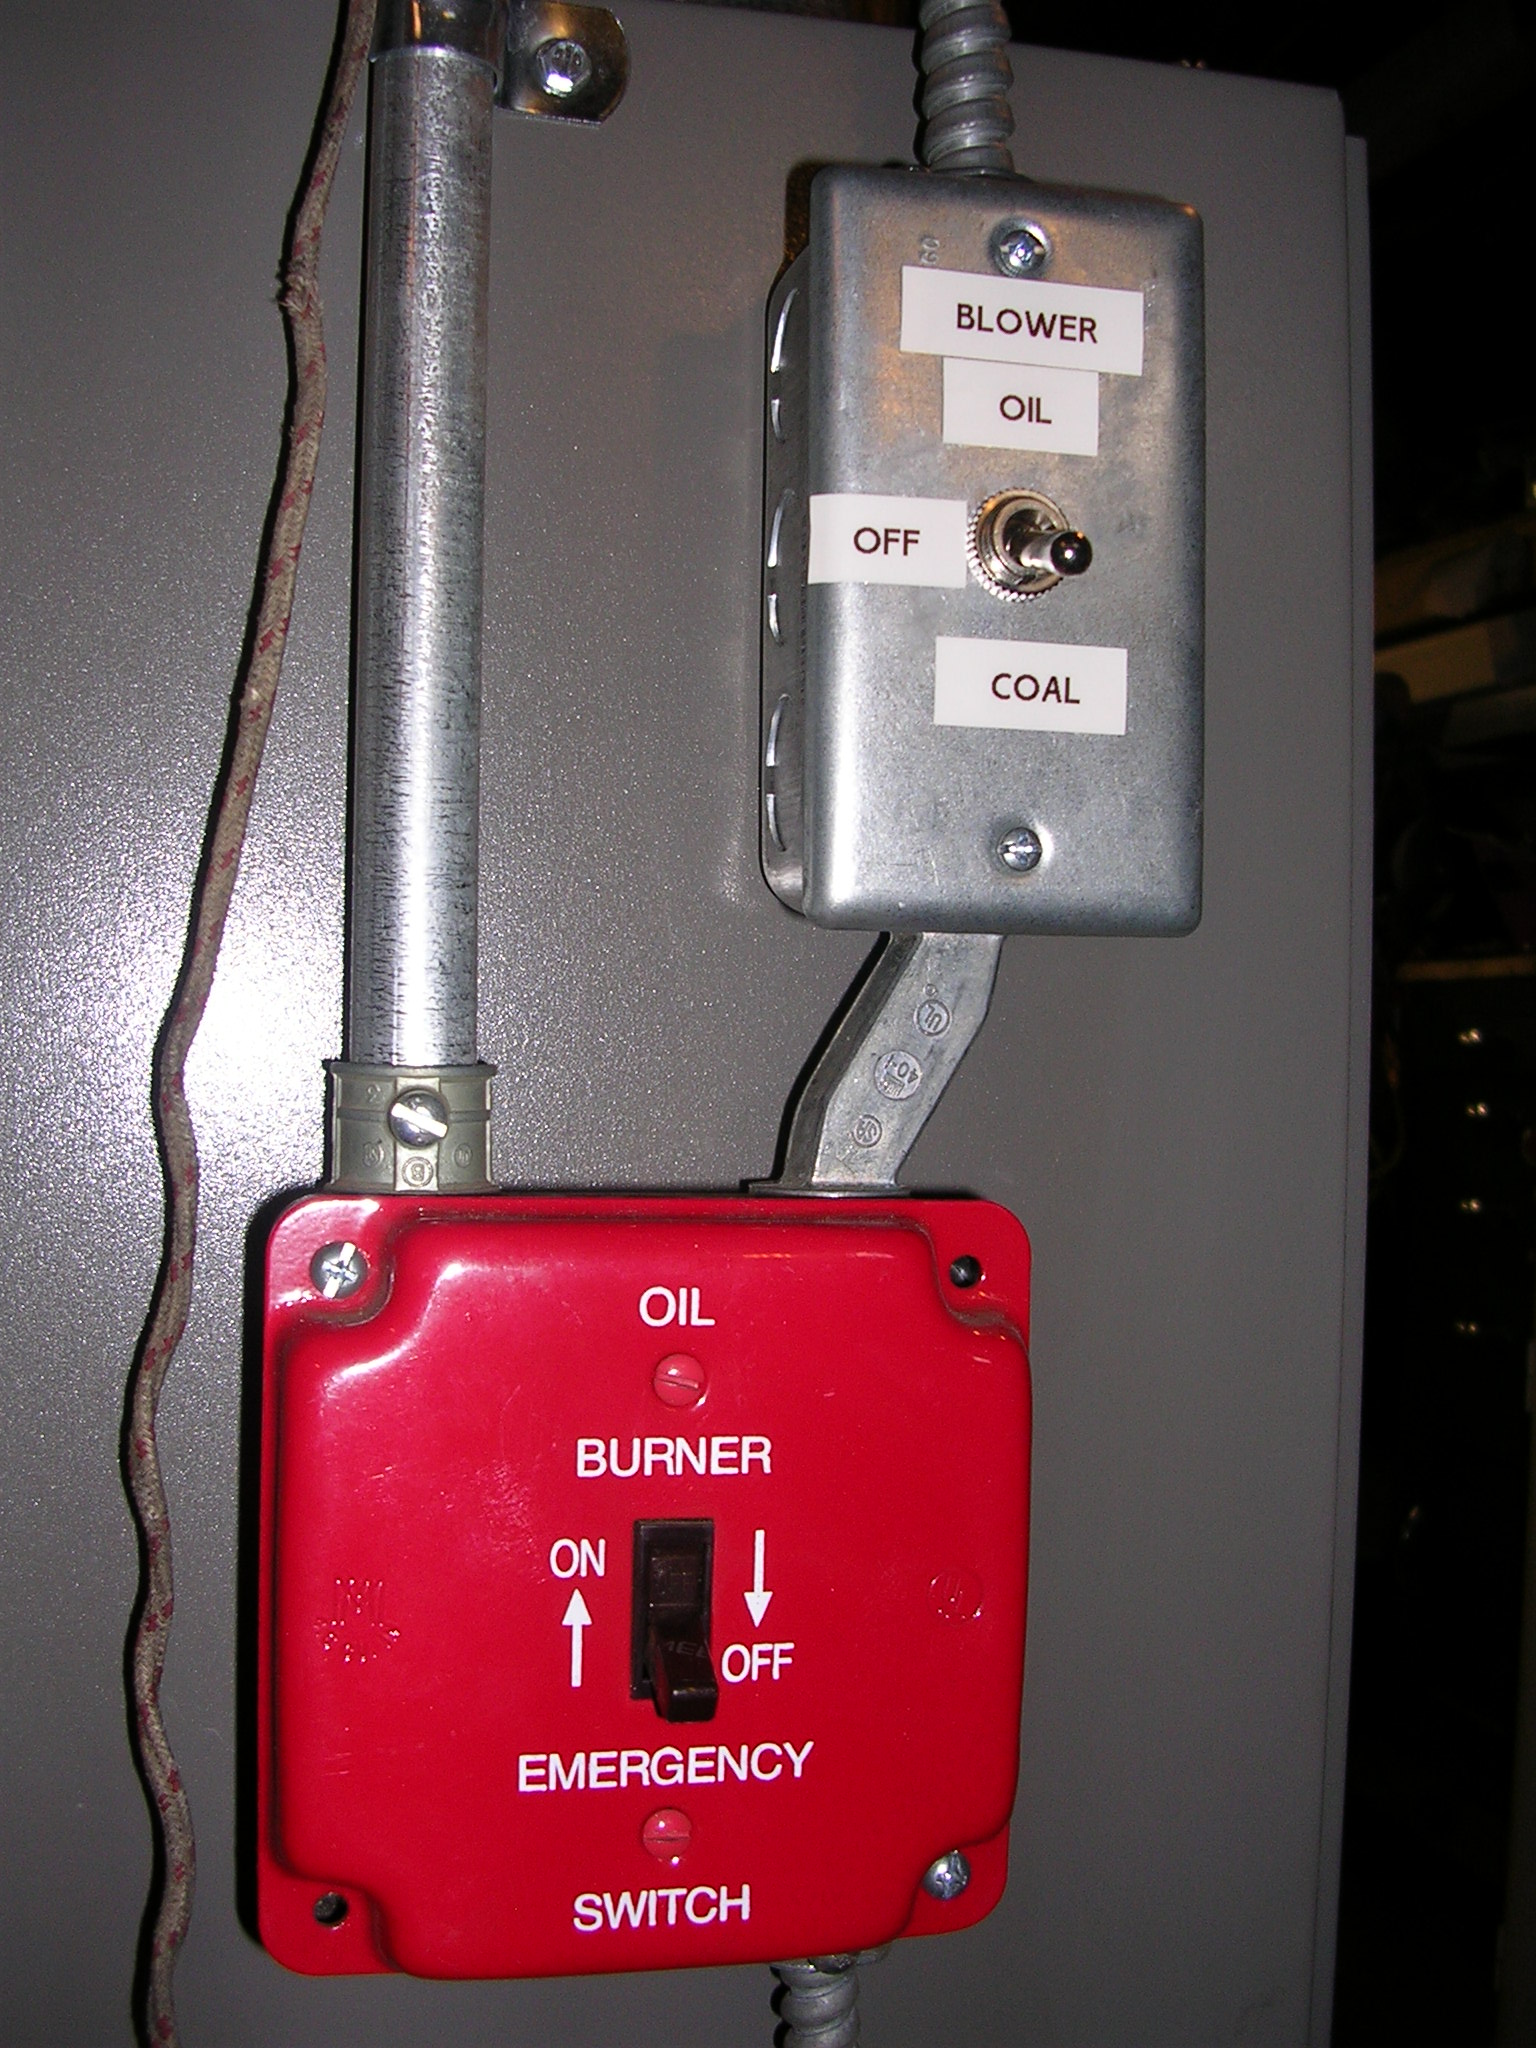 BLOWER SWITCH.JPG